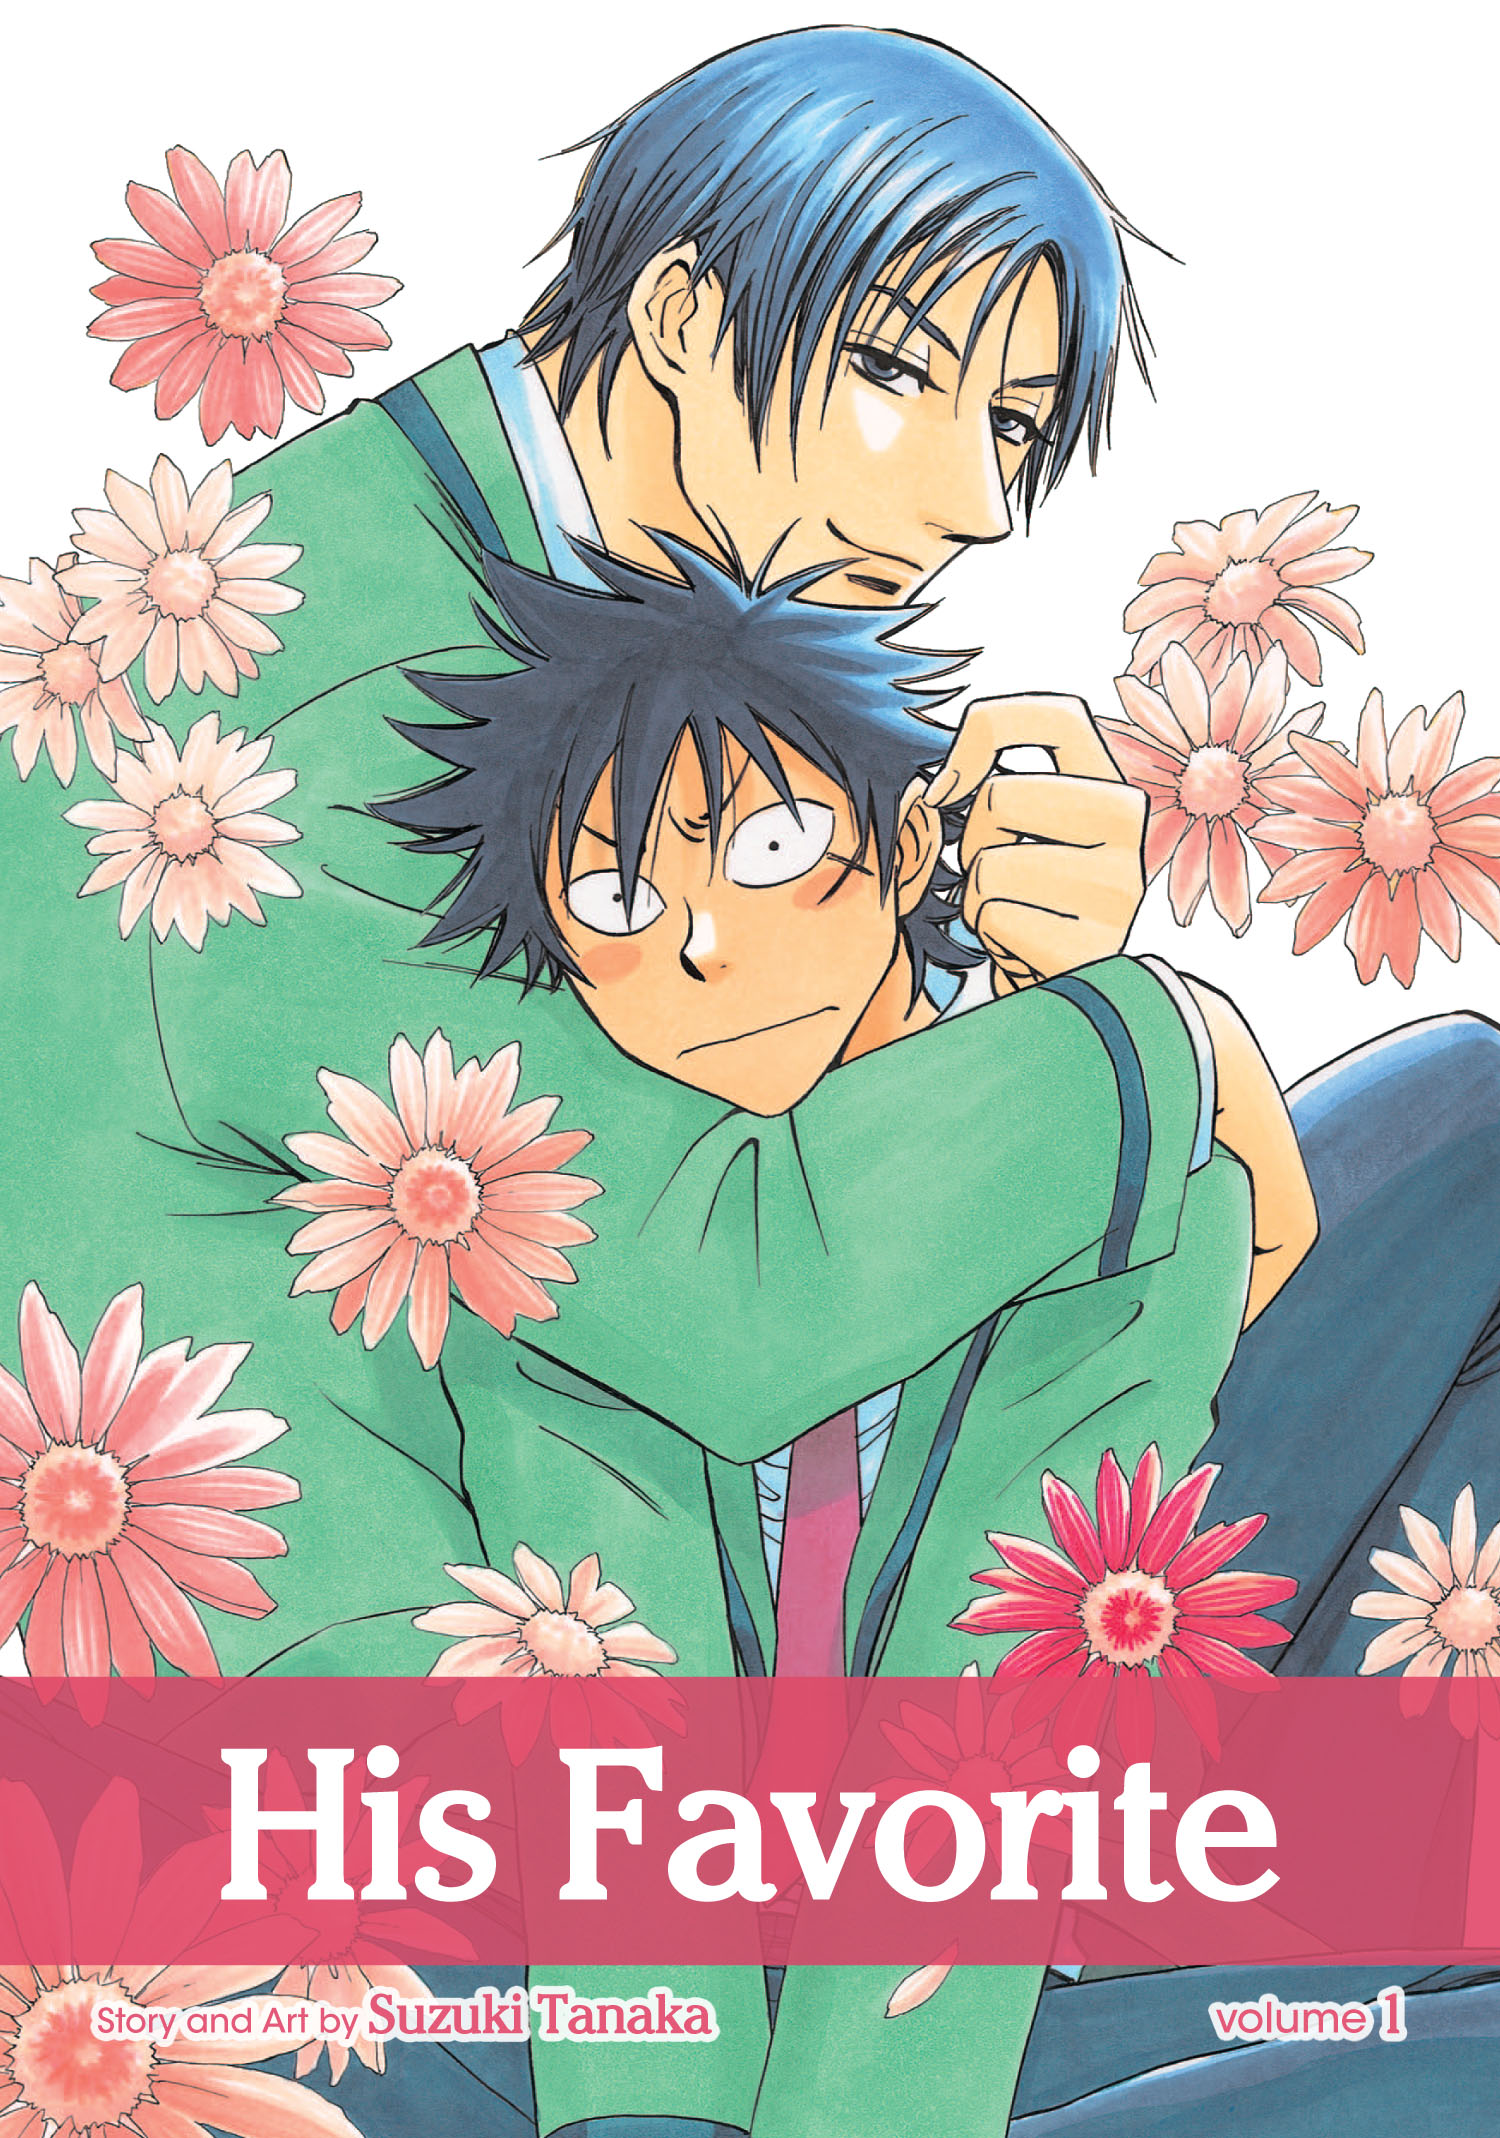 Anime School Book Cover : His favorite vol book by suzuki tanaka official